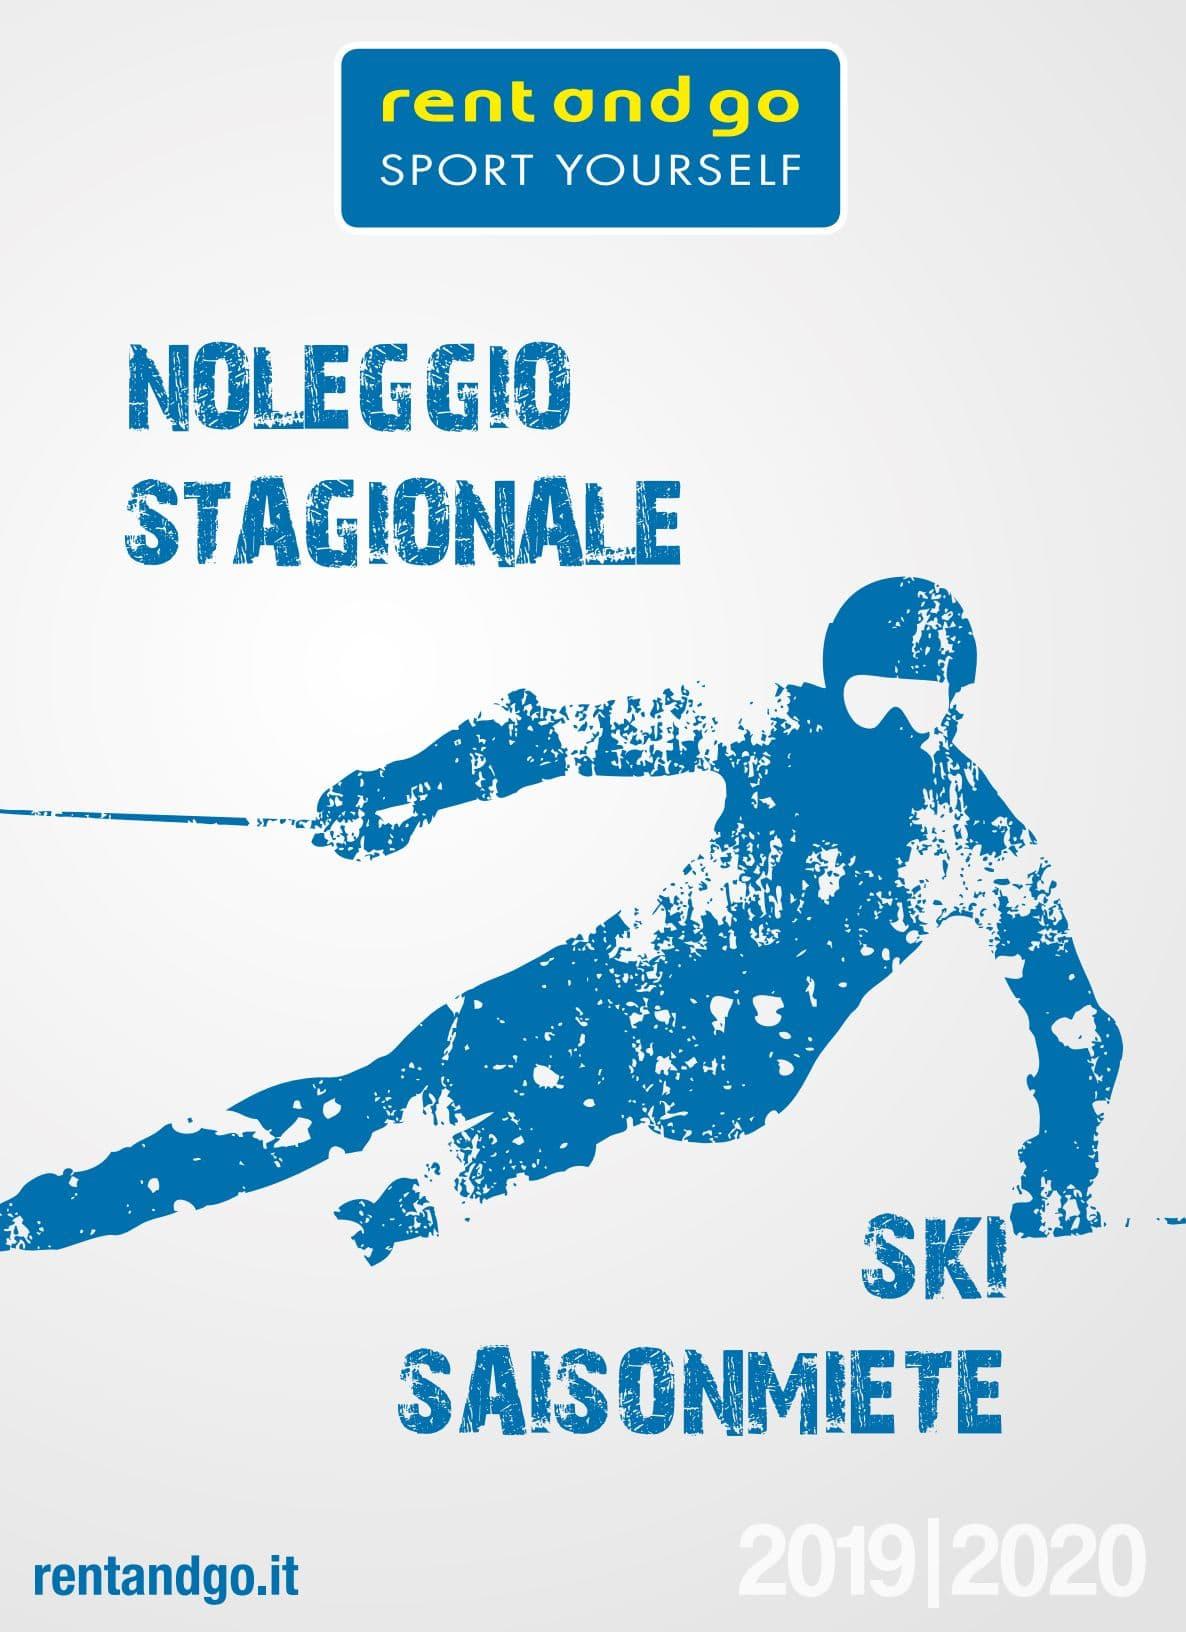 Ski rental for all the winter season in Italy